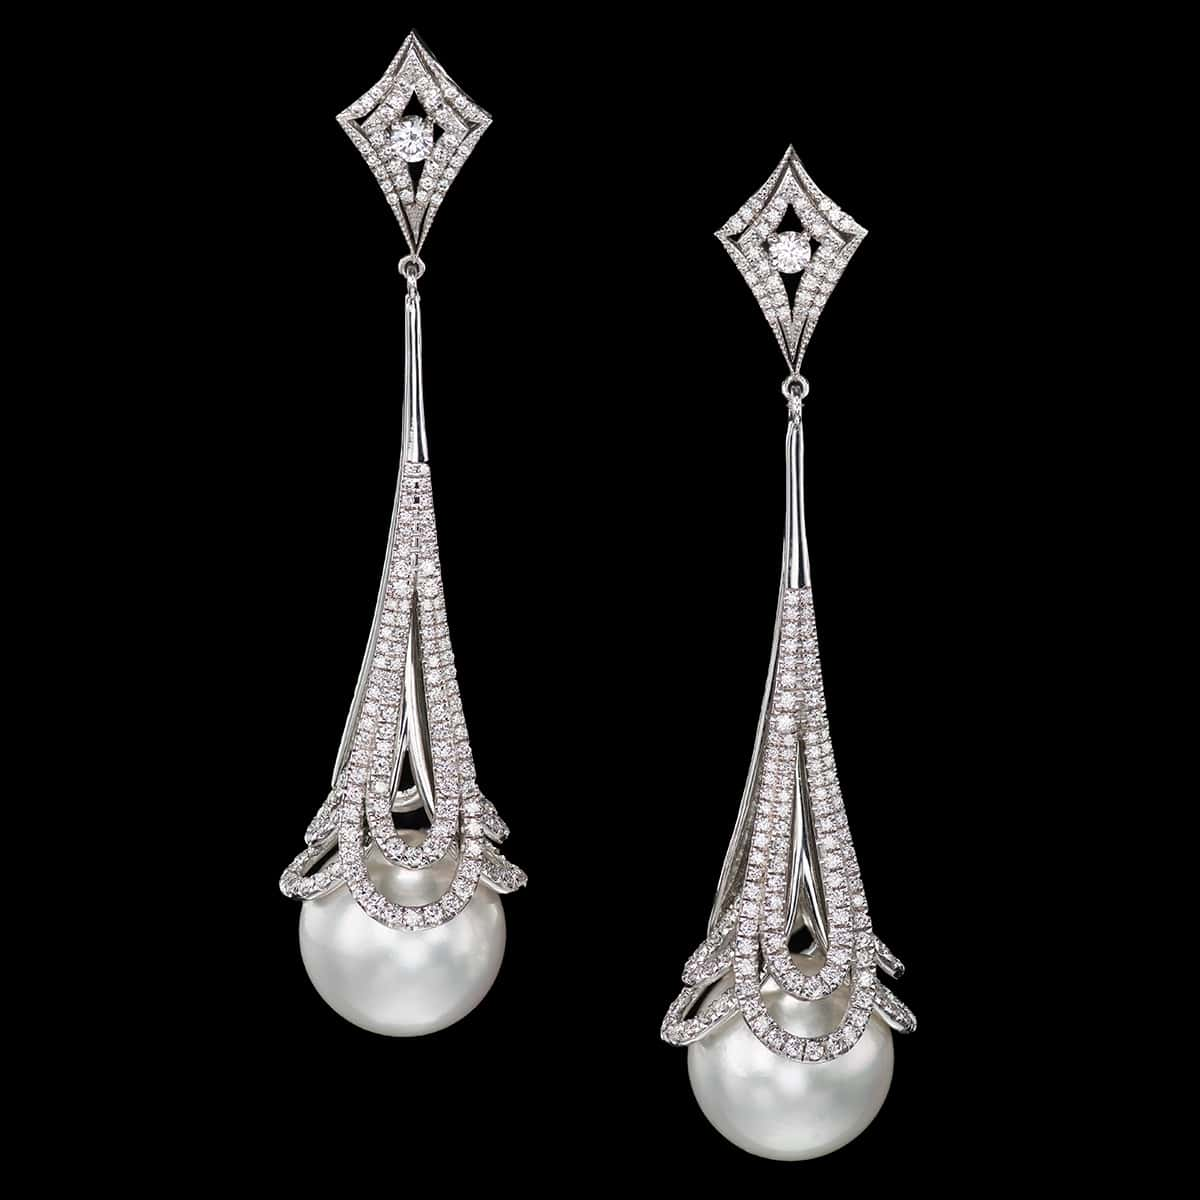 pearls in lace earrings